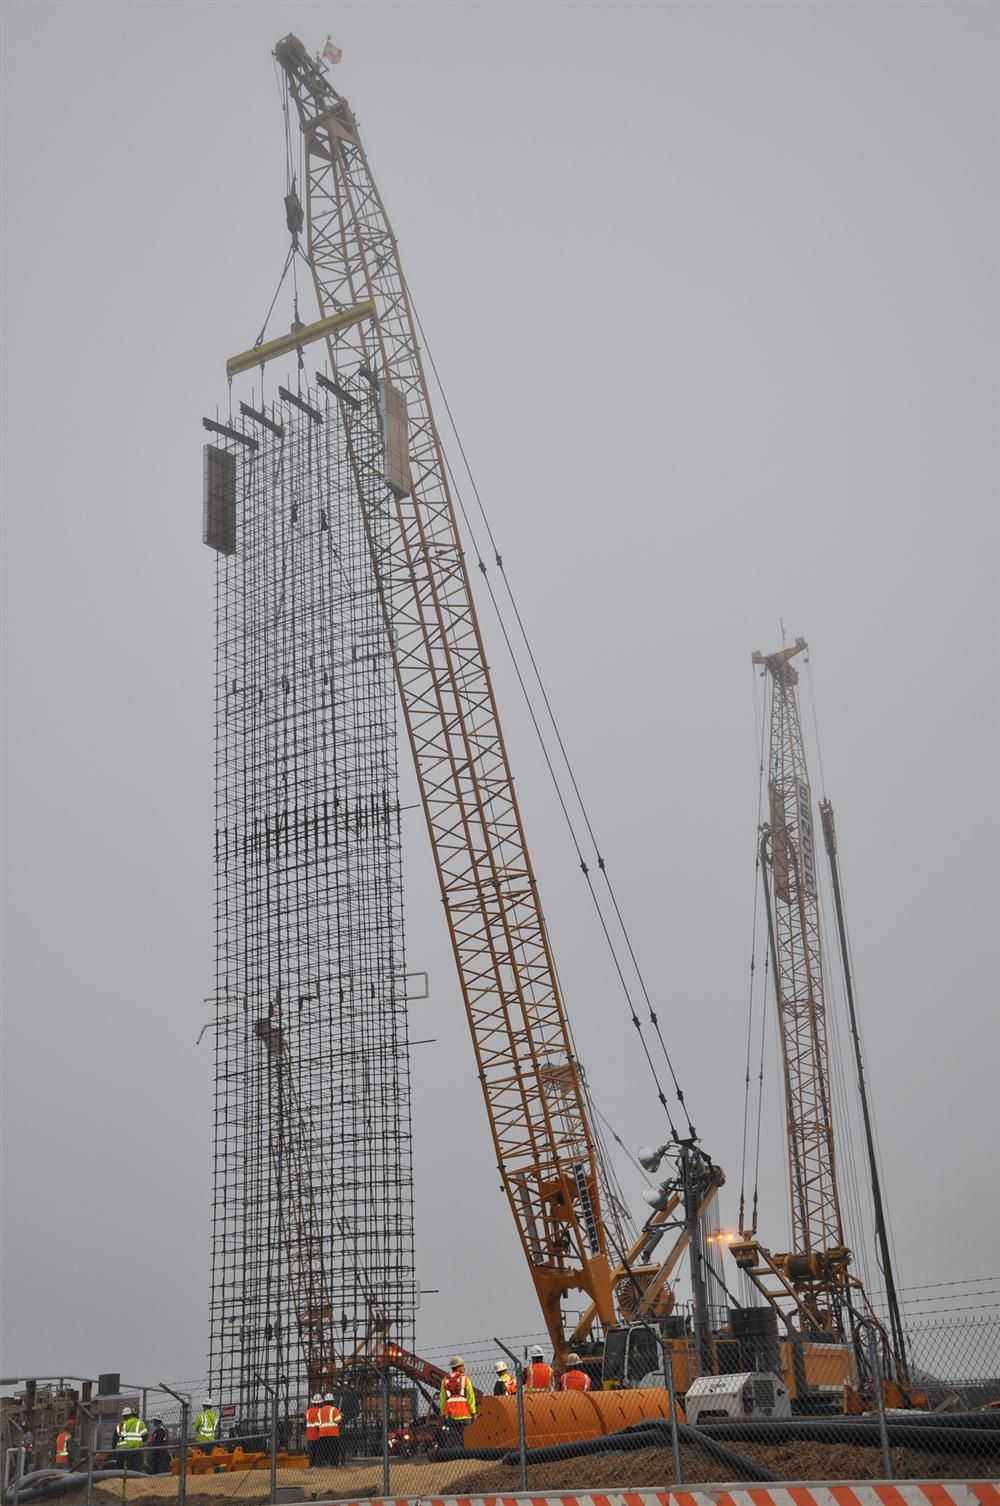 (DC Water photo) In preparation for excavating the main shaft on Blue Plains, steel cages are assembled and lowered into pre-dug holes more than 100 ft. (30.5) below the surface. Once concrete is poured, this reinforced structure will provide stability t